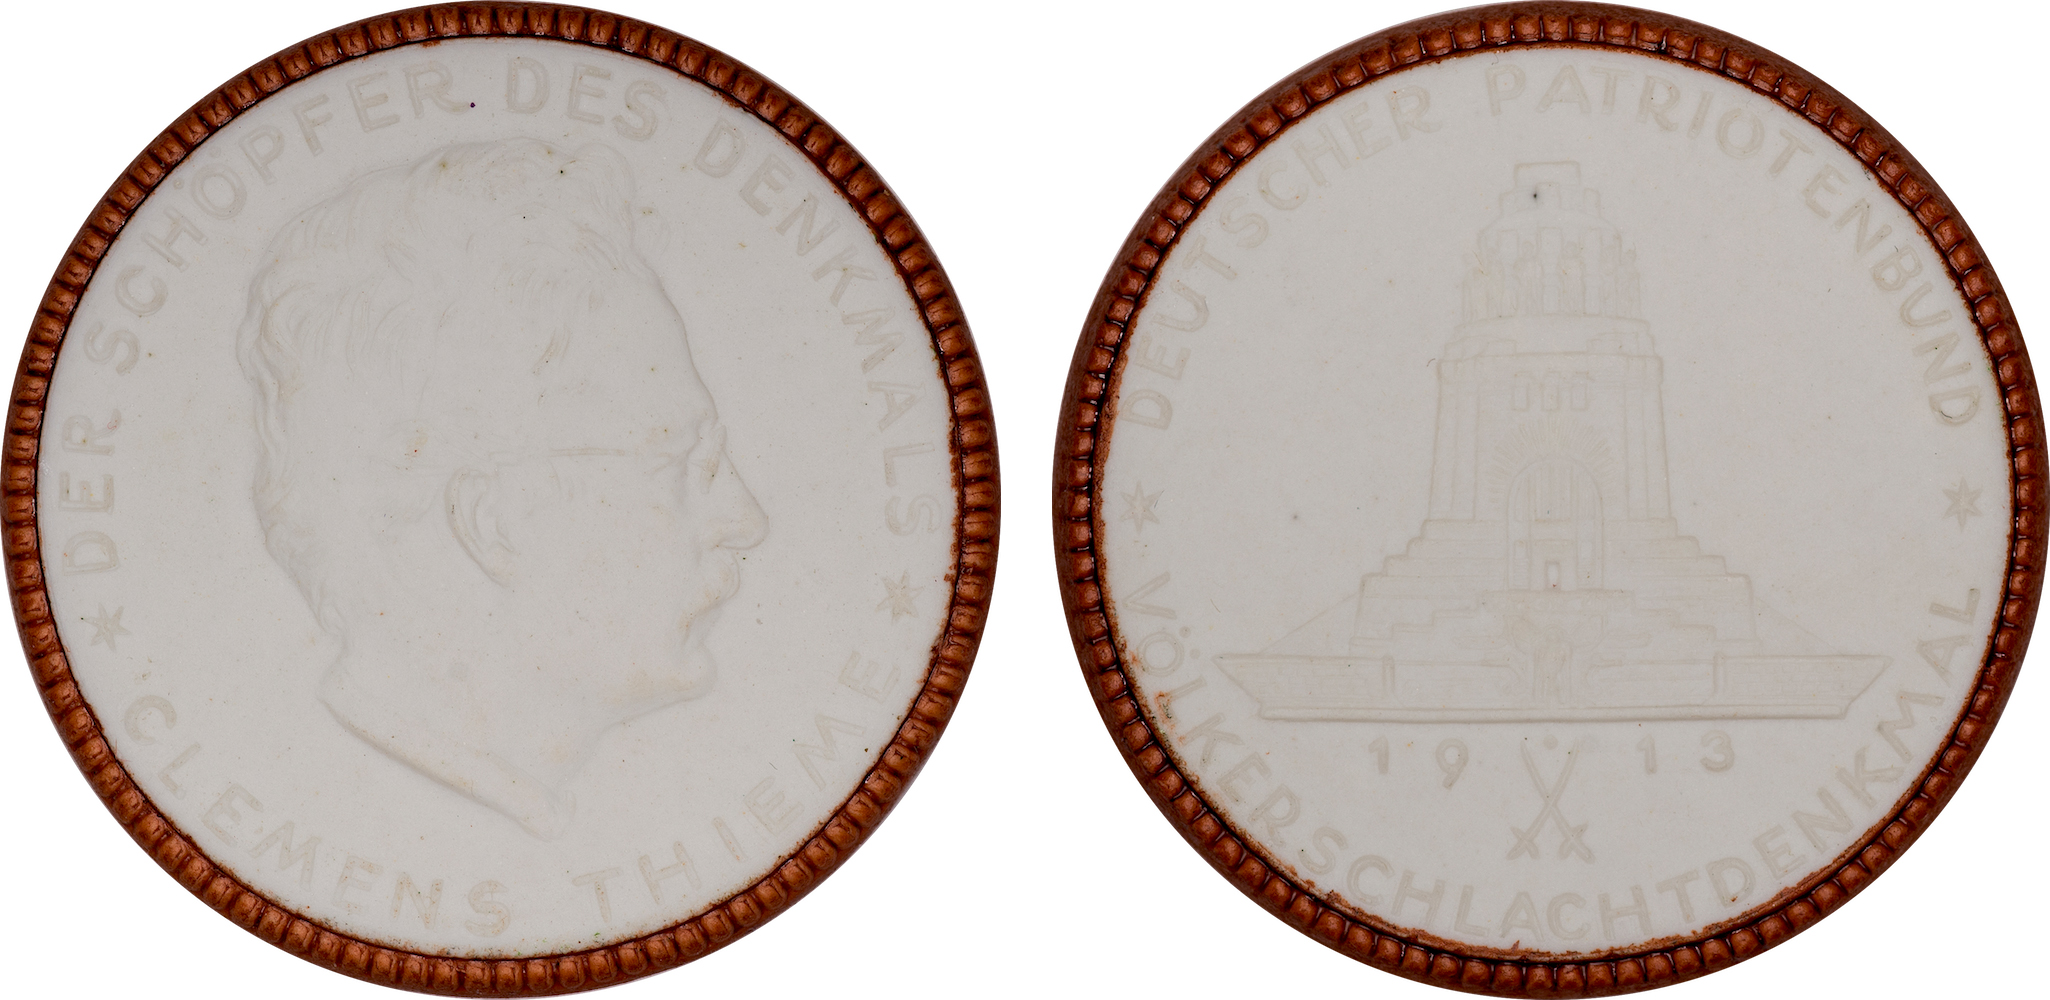 #11  Diameter: 39.5mm / Weight: 10.8g  Germany 1913 Porcelain Medal  Scheuch #  Mintage